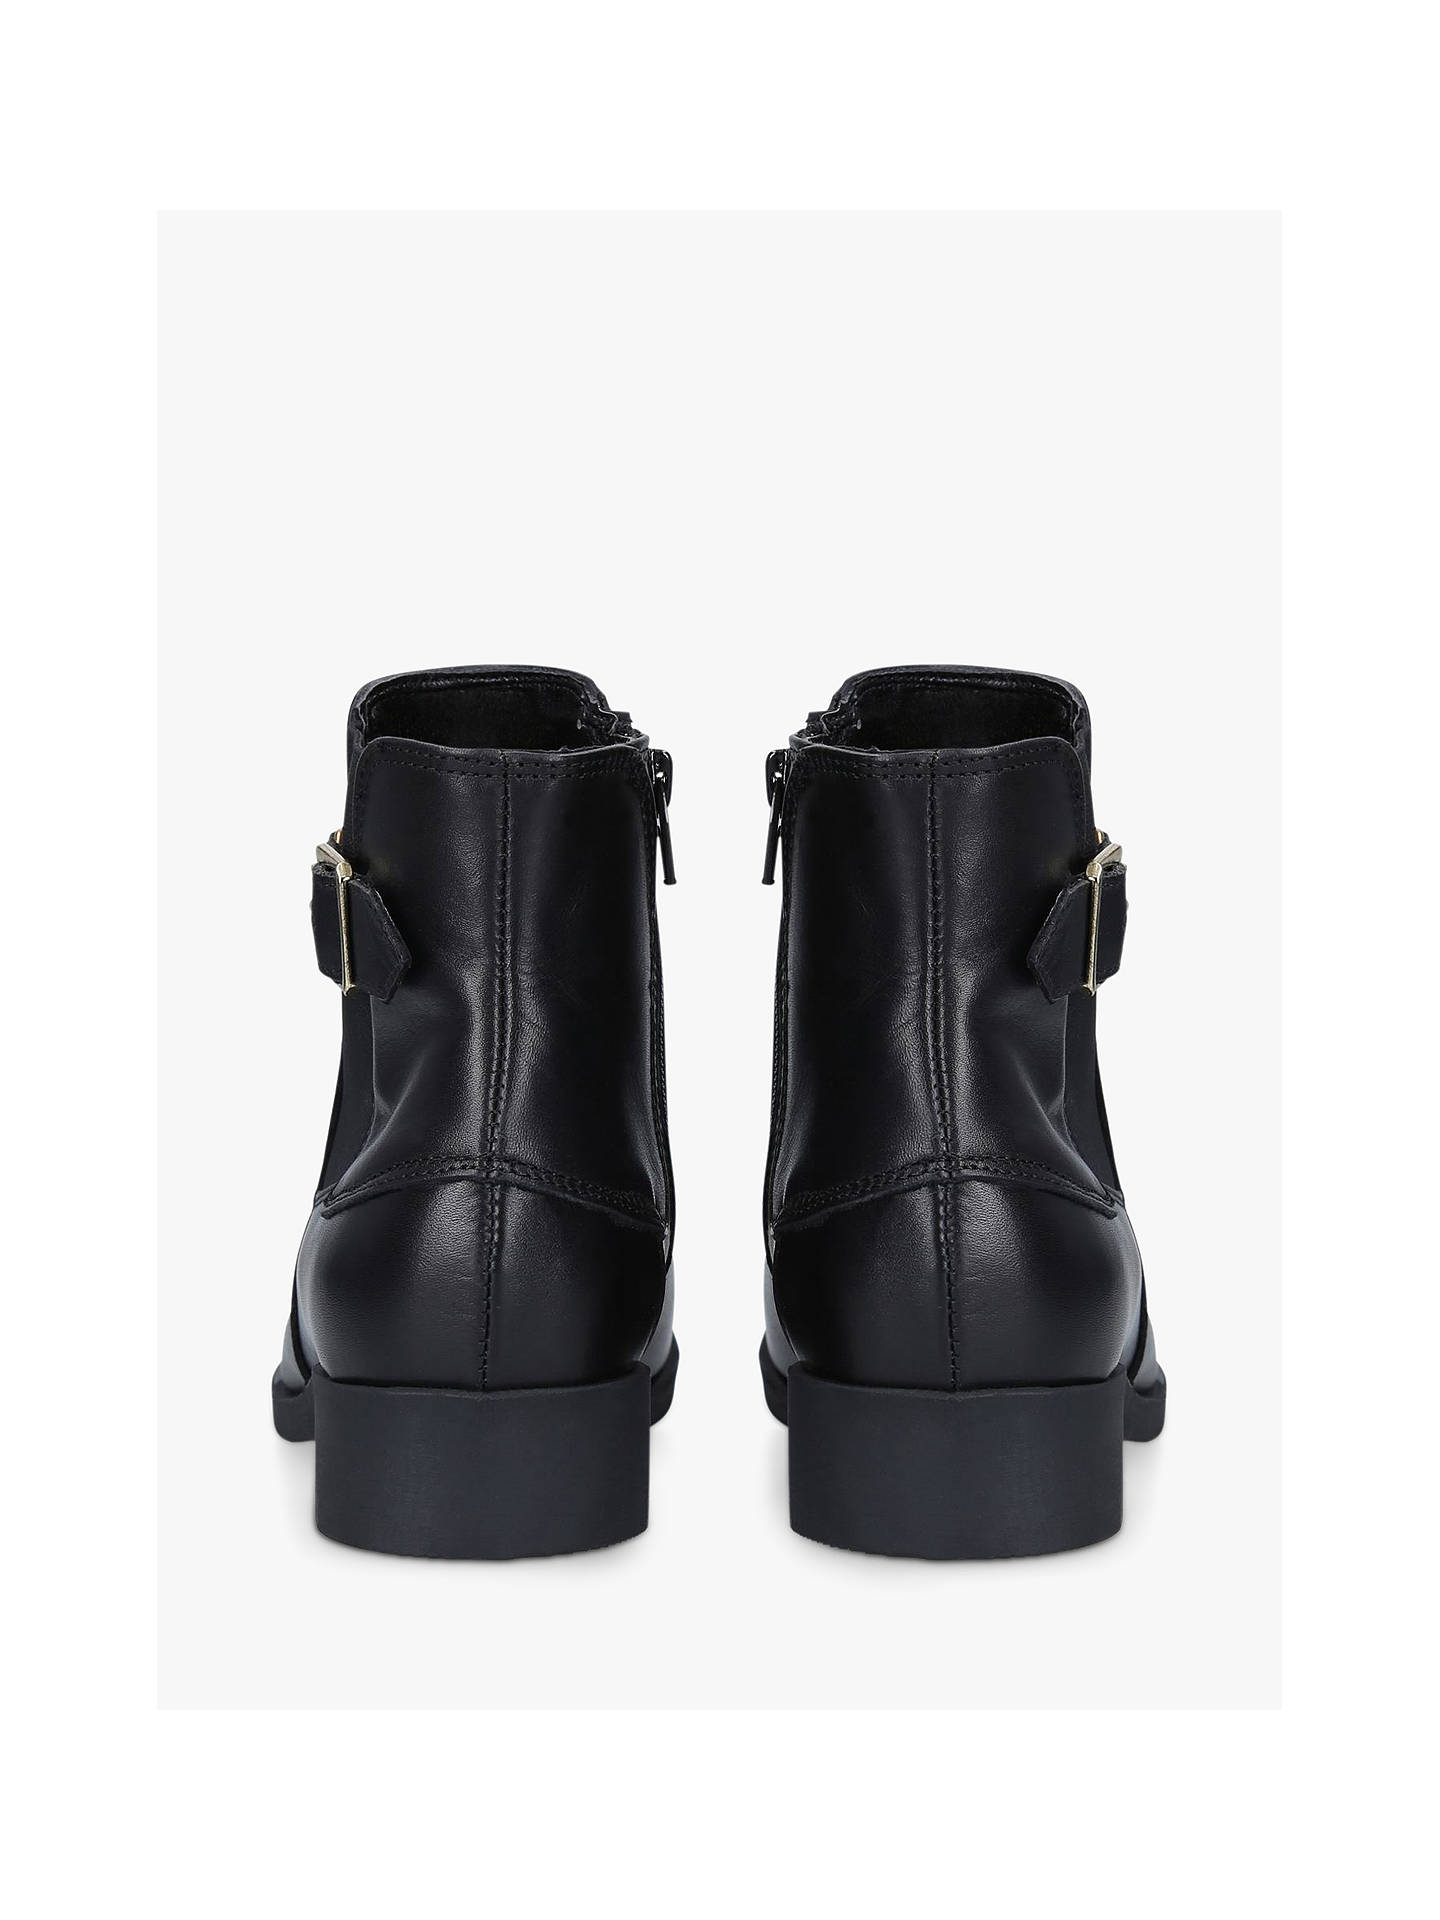 Buy Carvela Comfort Rich Leather Ankle Boots, Black, 3 Online at johnlewis.com